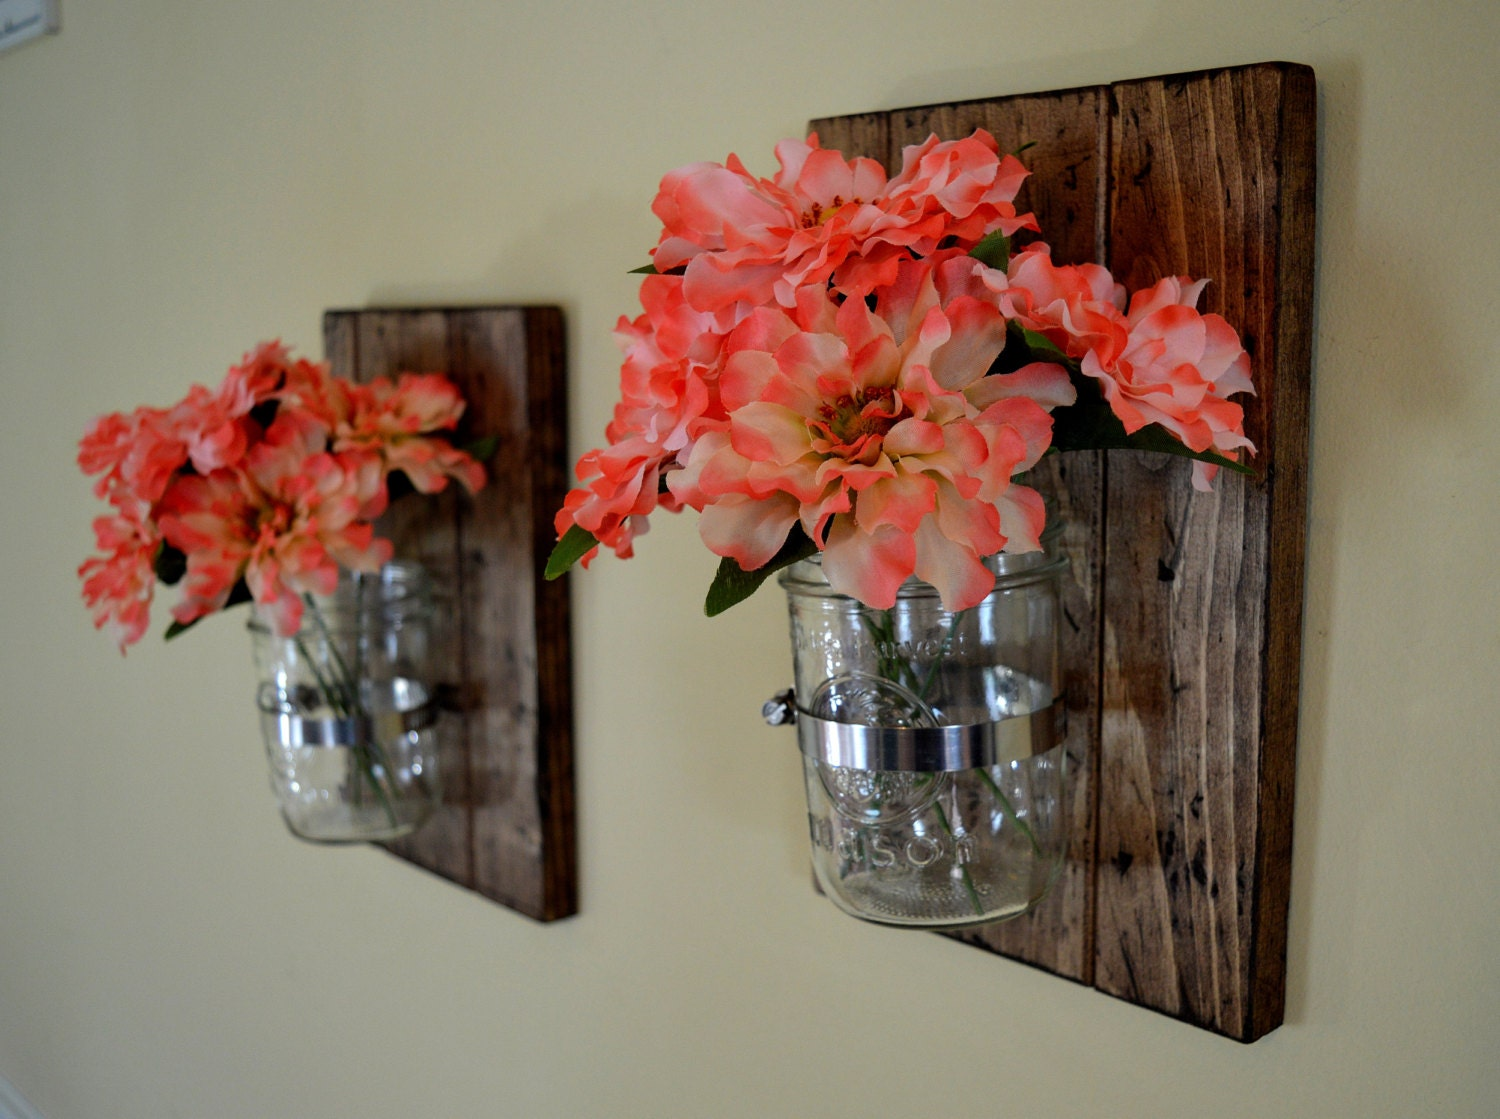 Wall vases for flowers - Set Of 2 Mason Jar Wall Decor Distressed Rustic Mason Jar Rustic Wall Decor Spring Decor Mason Jar Planter Wall Sconce Best Seller